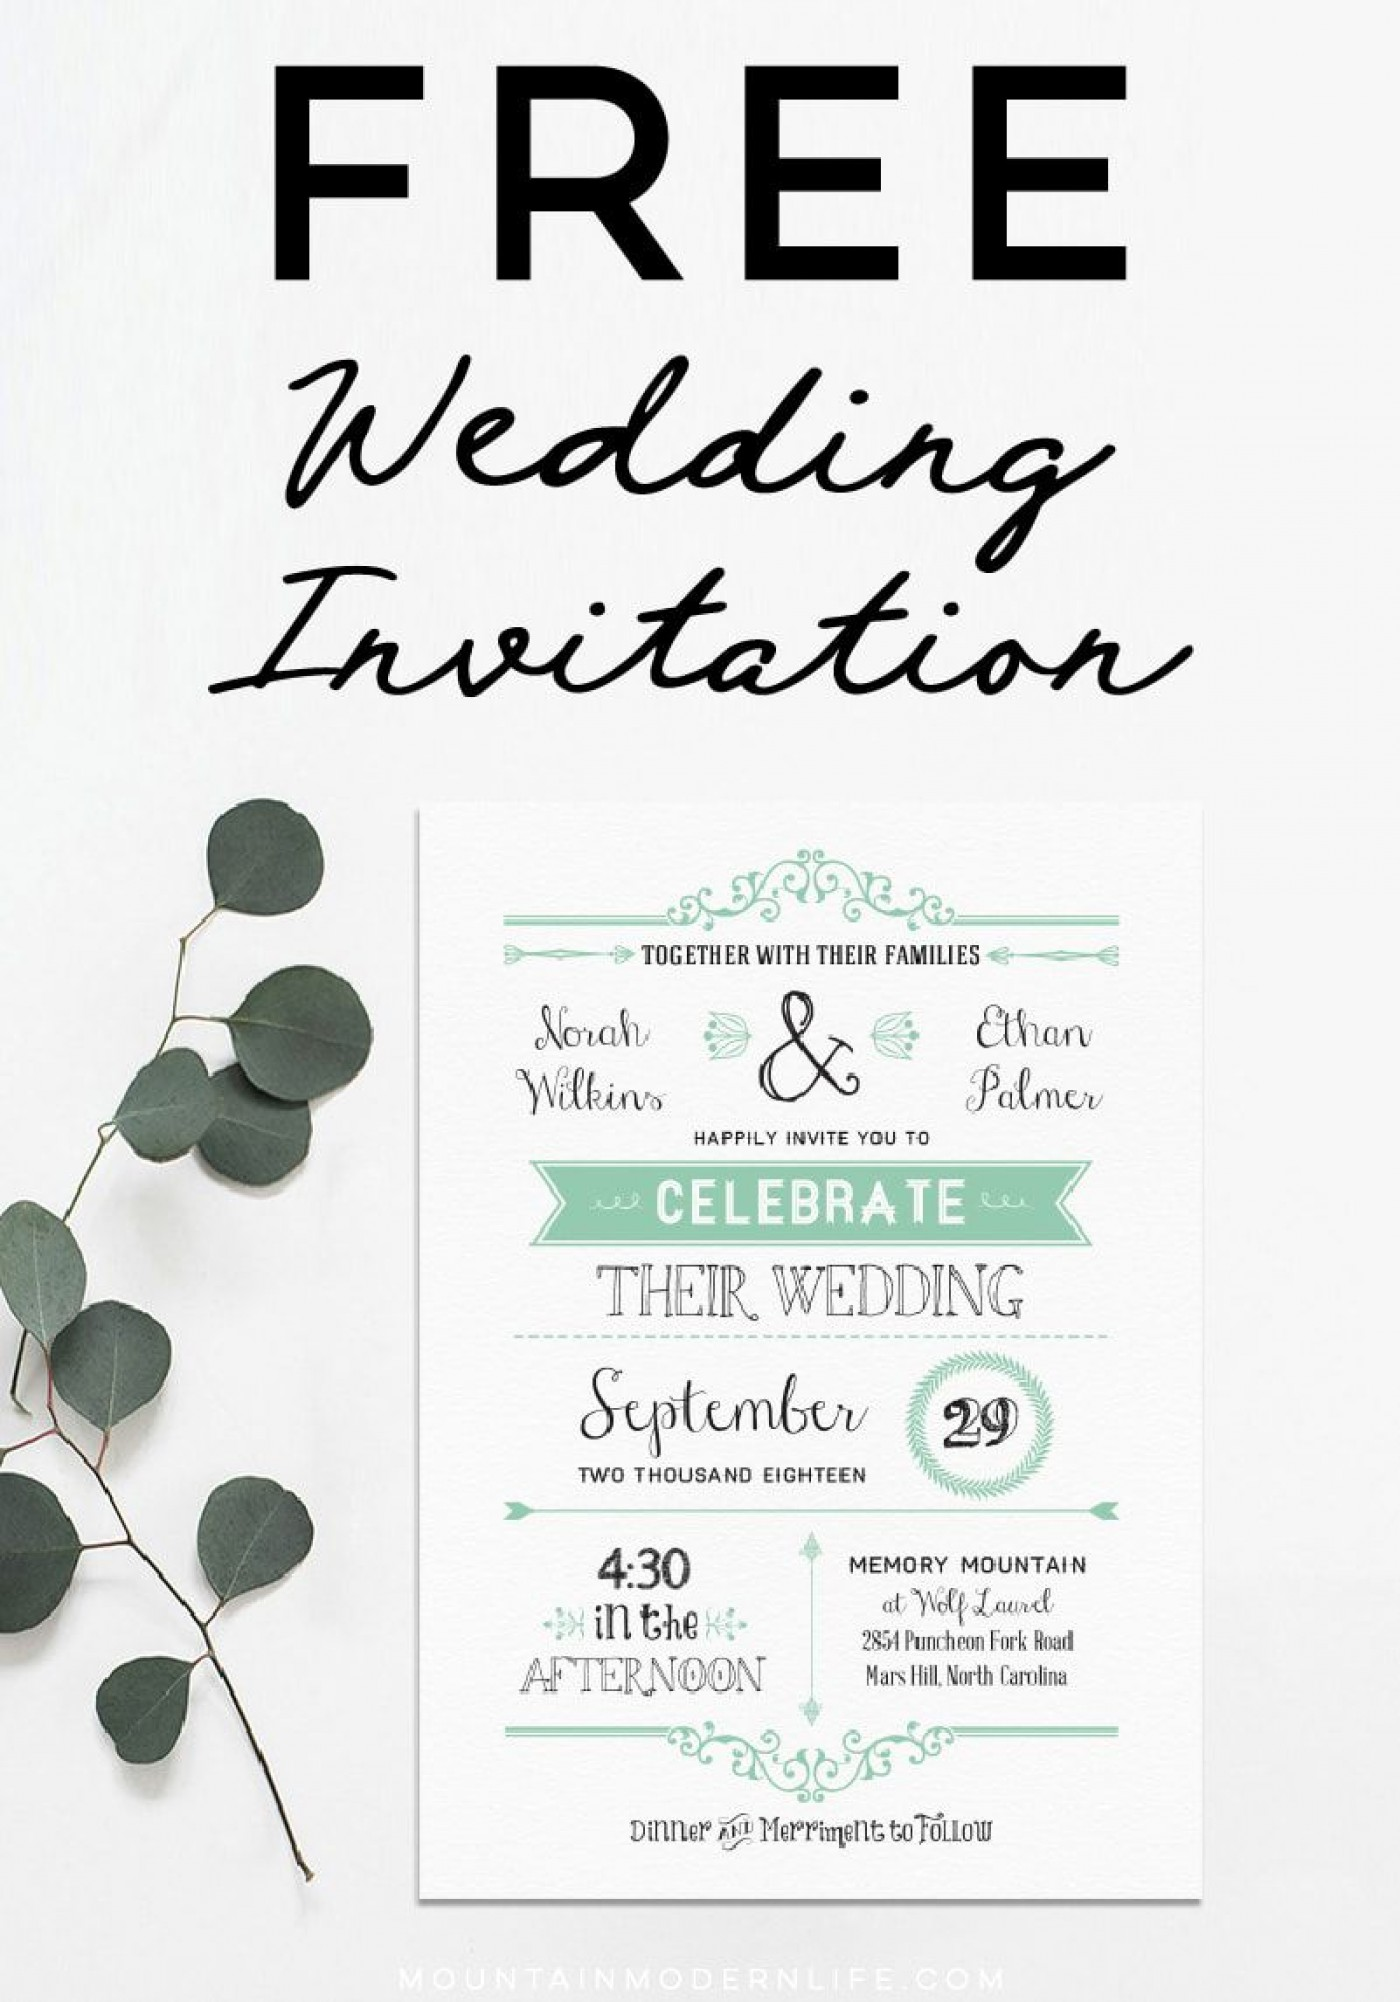 006 Staggering Celebration Of Life Invite Template Free Photo  Invitation Download1400